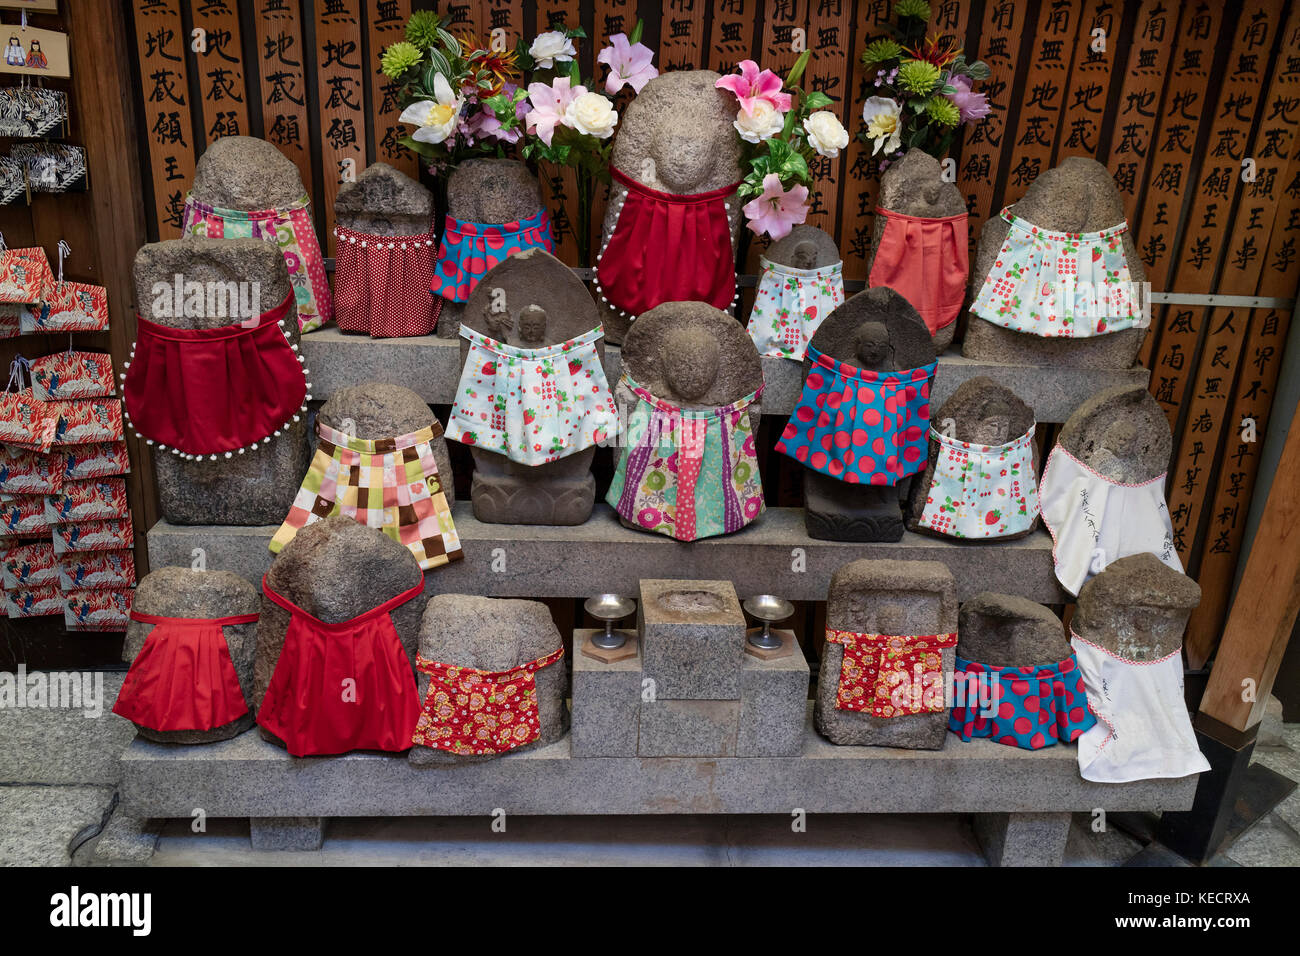 Kyoto - Japan, May 22, 2017: Traditional stone carved Jizo with different colored skirts in front of the temple - Stock Image